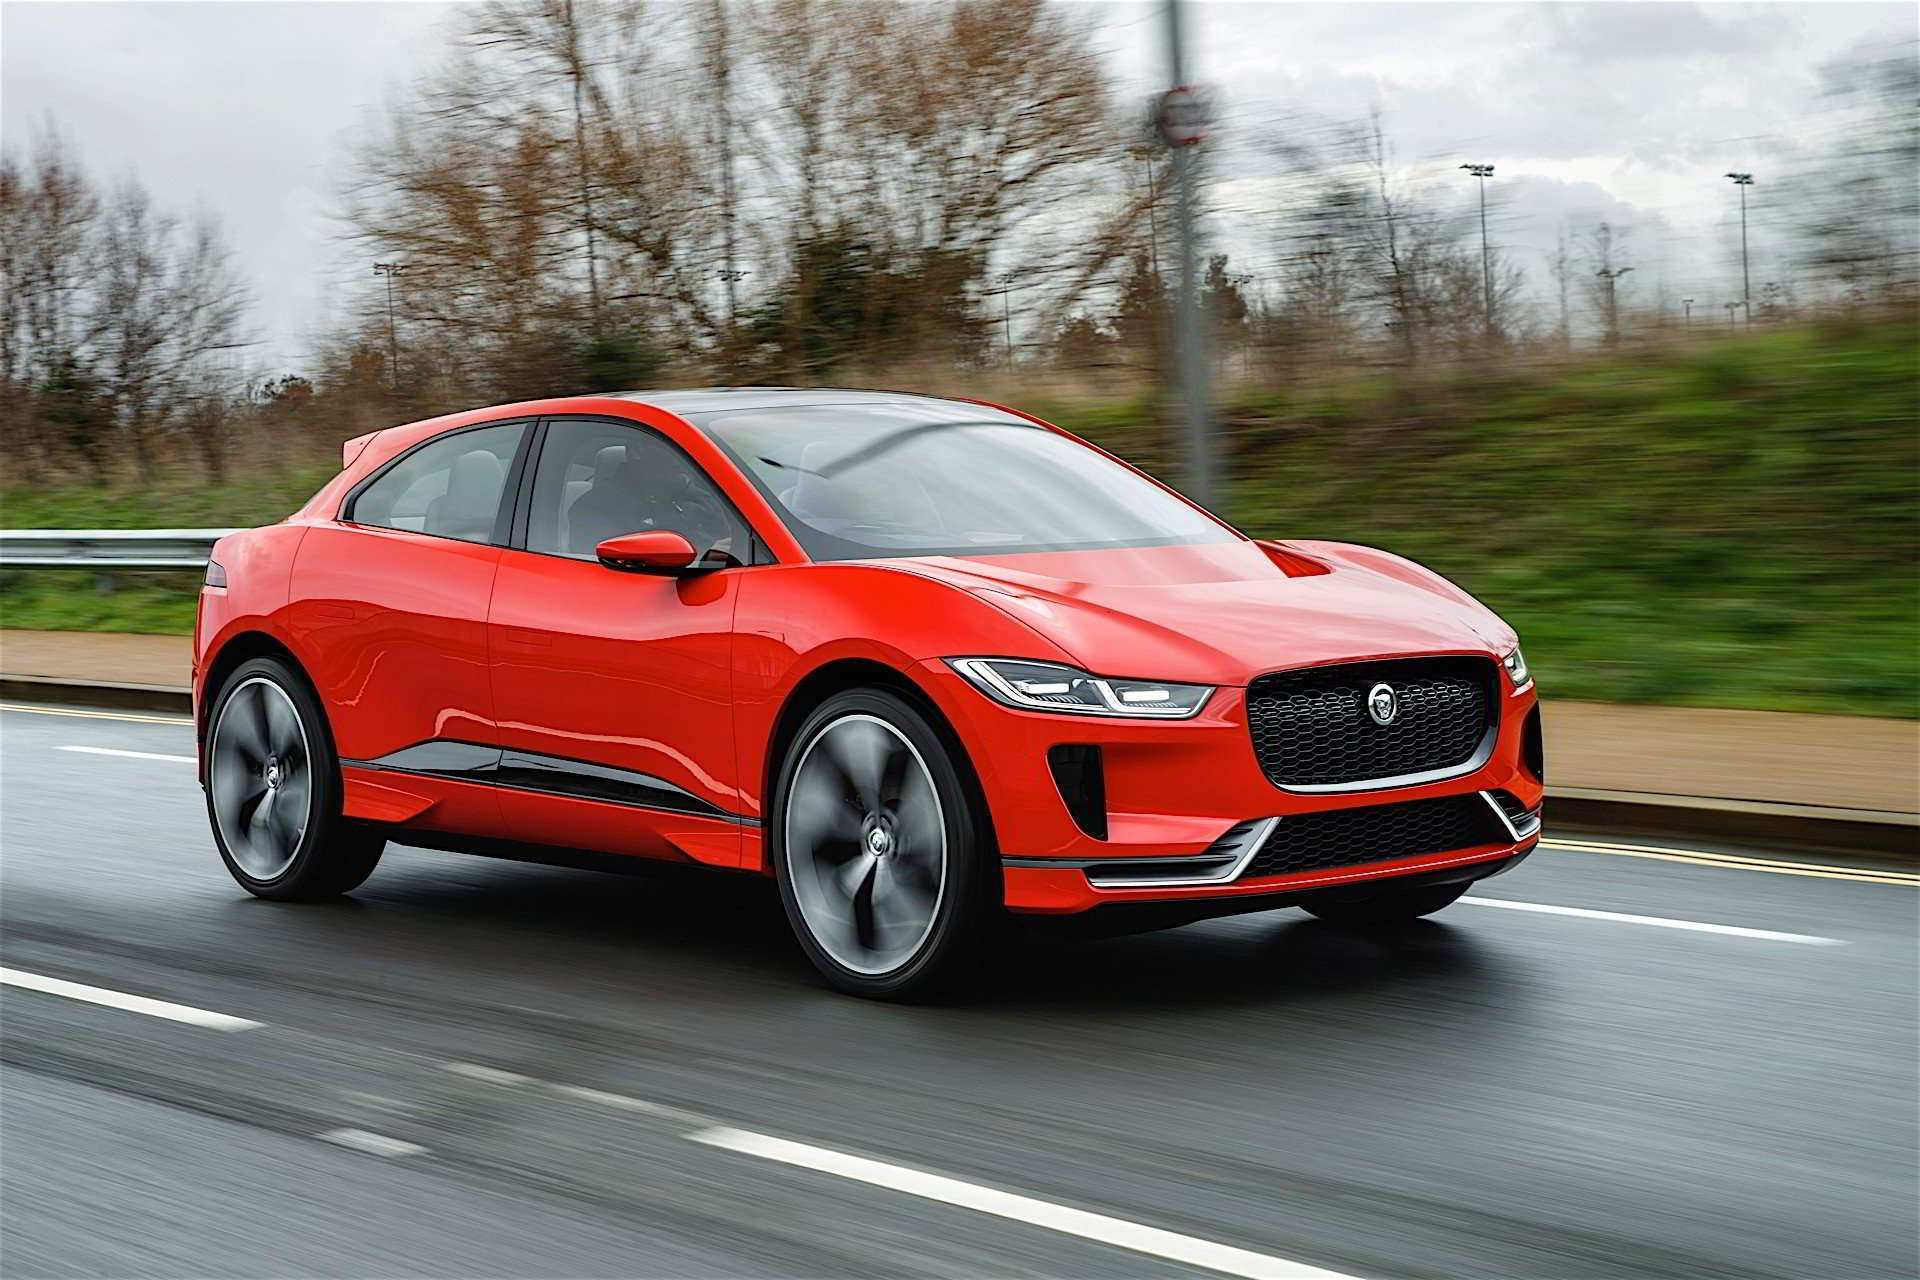 54 A 2019 Jaguar Xq Crossover Price And Review